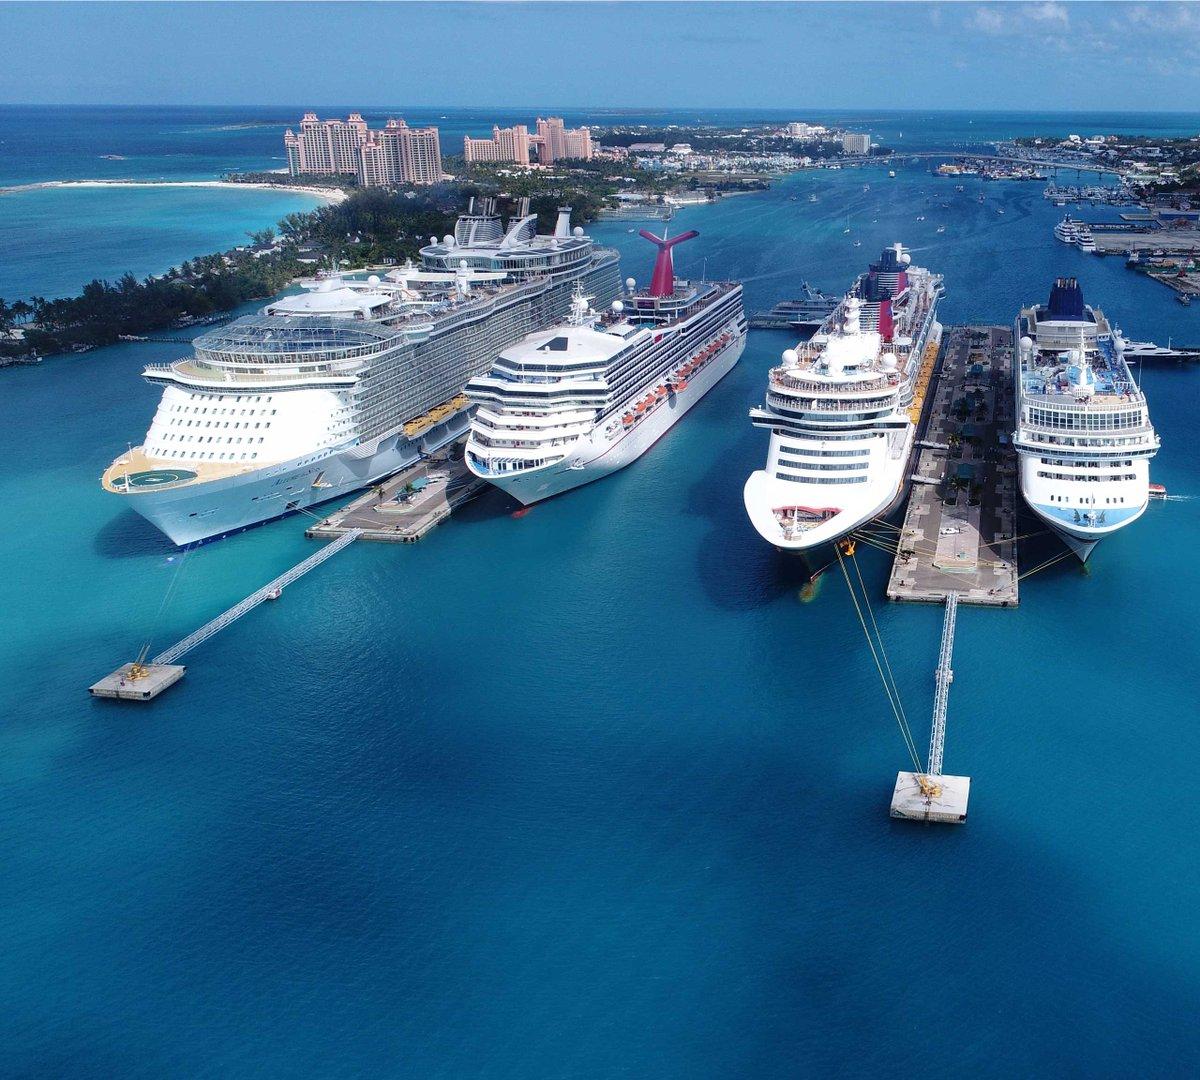 2019 is going to be a BIG year for cruising. But why? Our 6 insights shed light on the industry's latest developments - https://t.co/IvaNI0ZkY2 #cruise2019 #letscruise #cruiseships #cruiseguide #cruisers #cruising https://t.co/bqcVwZz5Iy